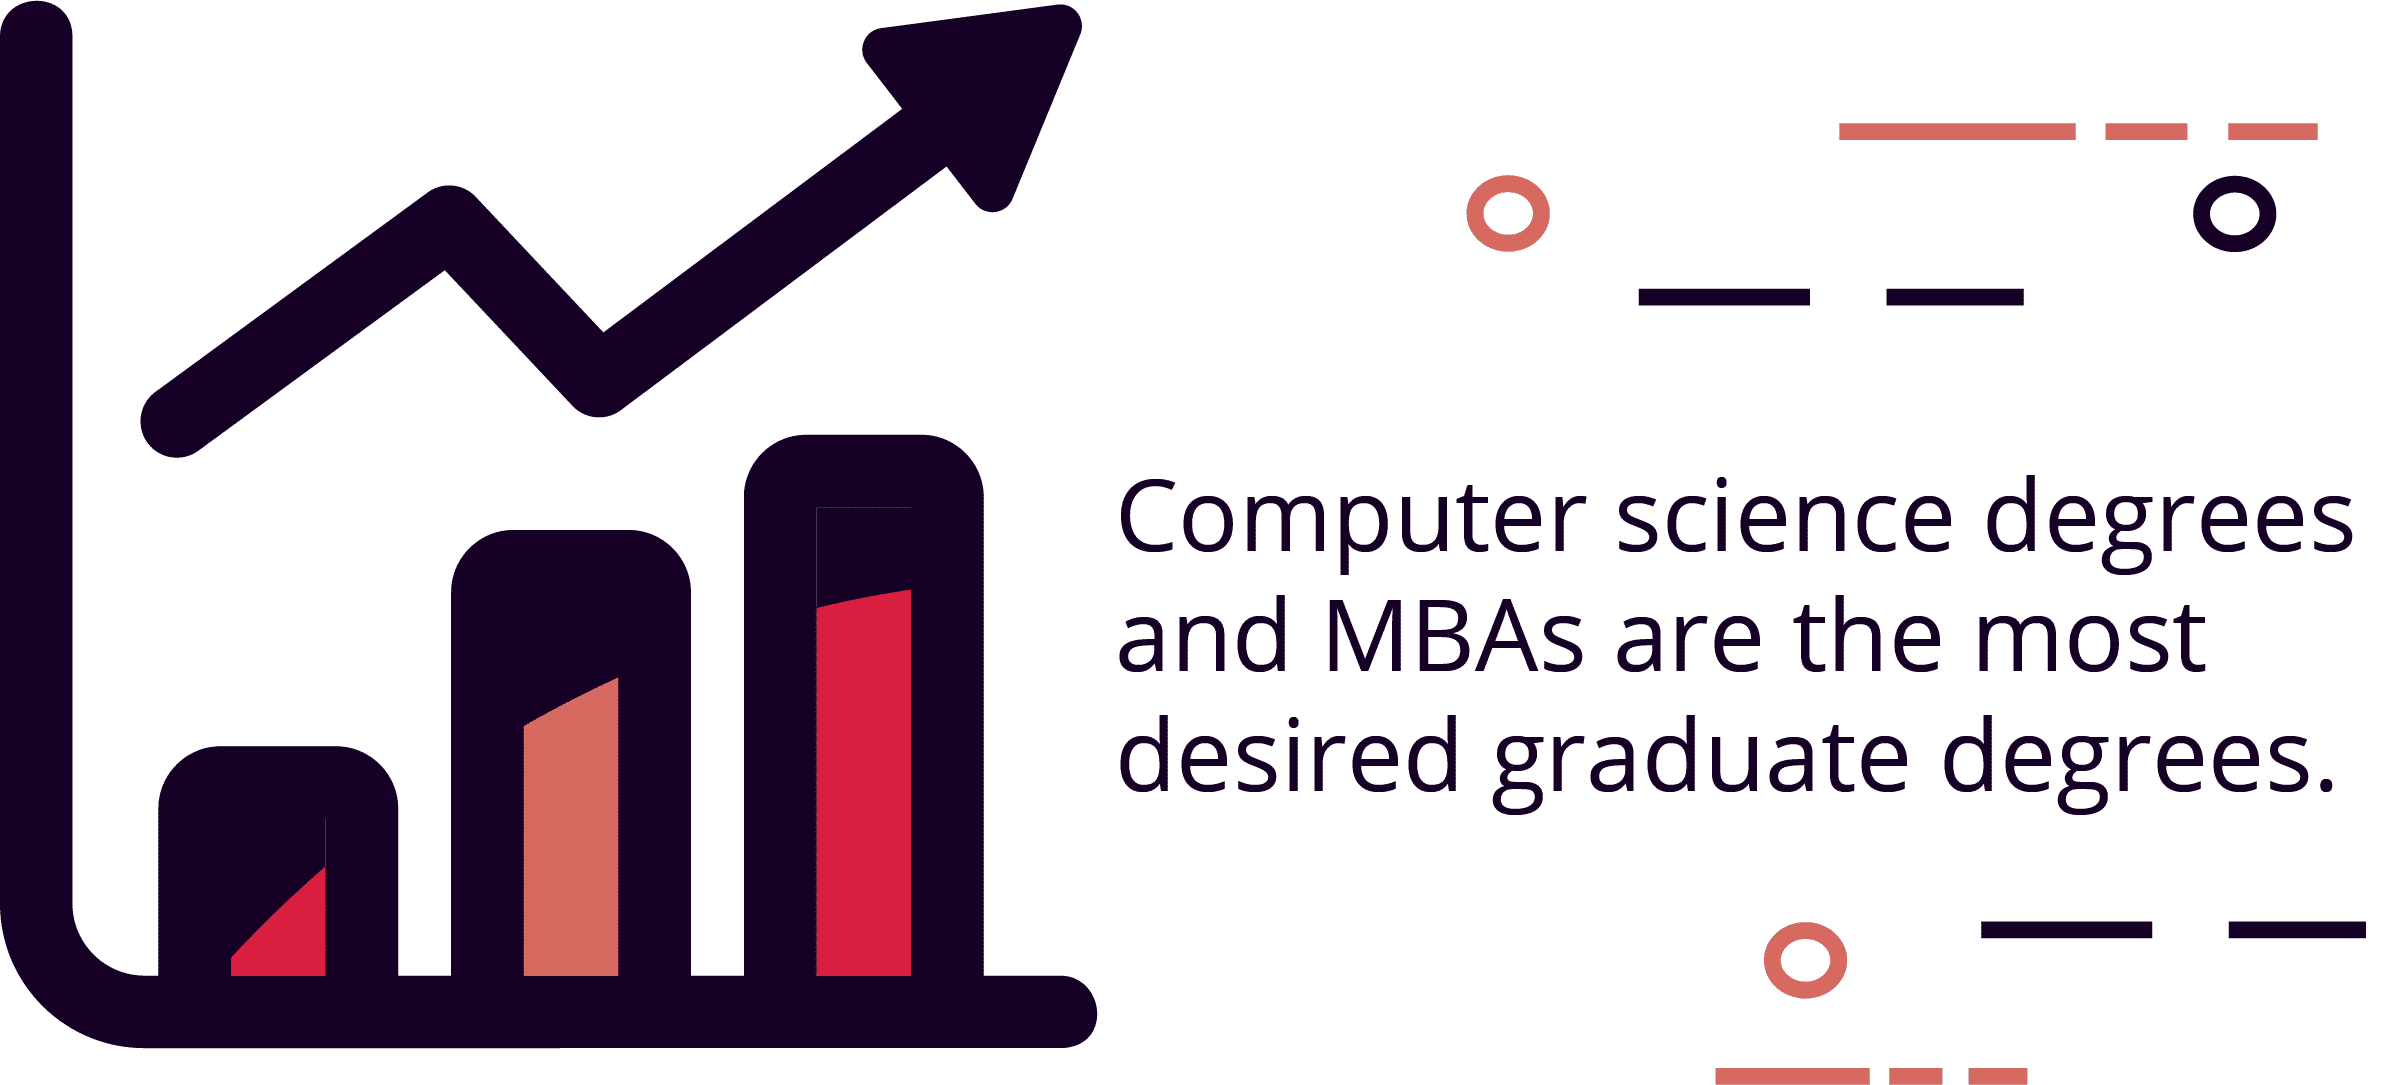 Computer science and MBAs were the most desired graduate degrees